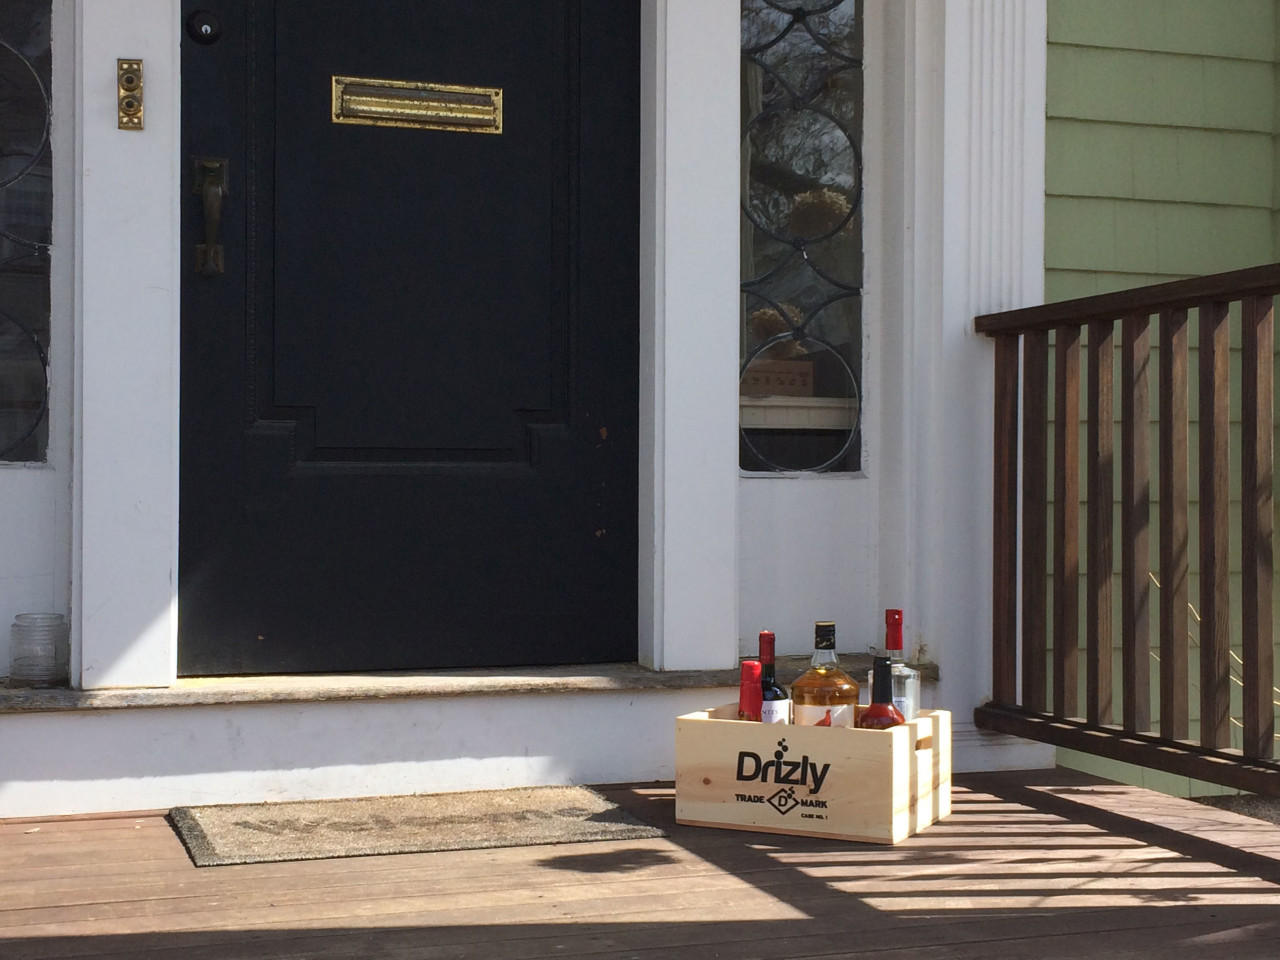 Drizly is a smartphone app for alcohol delivery.  The company is expanding into Chicago, in addition to its service in New York City and Boston. (Drizly/PRNewsFoto)